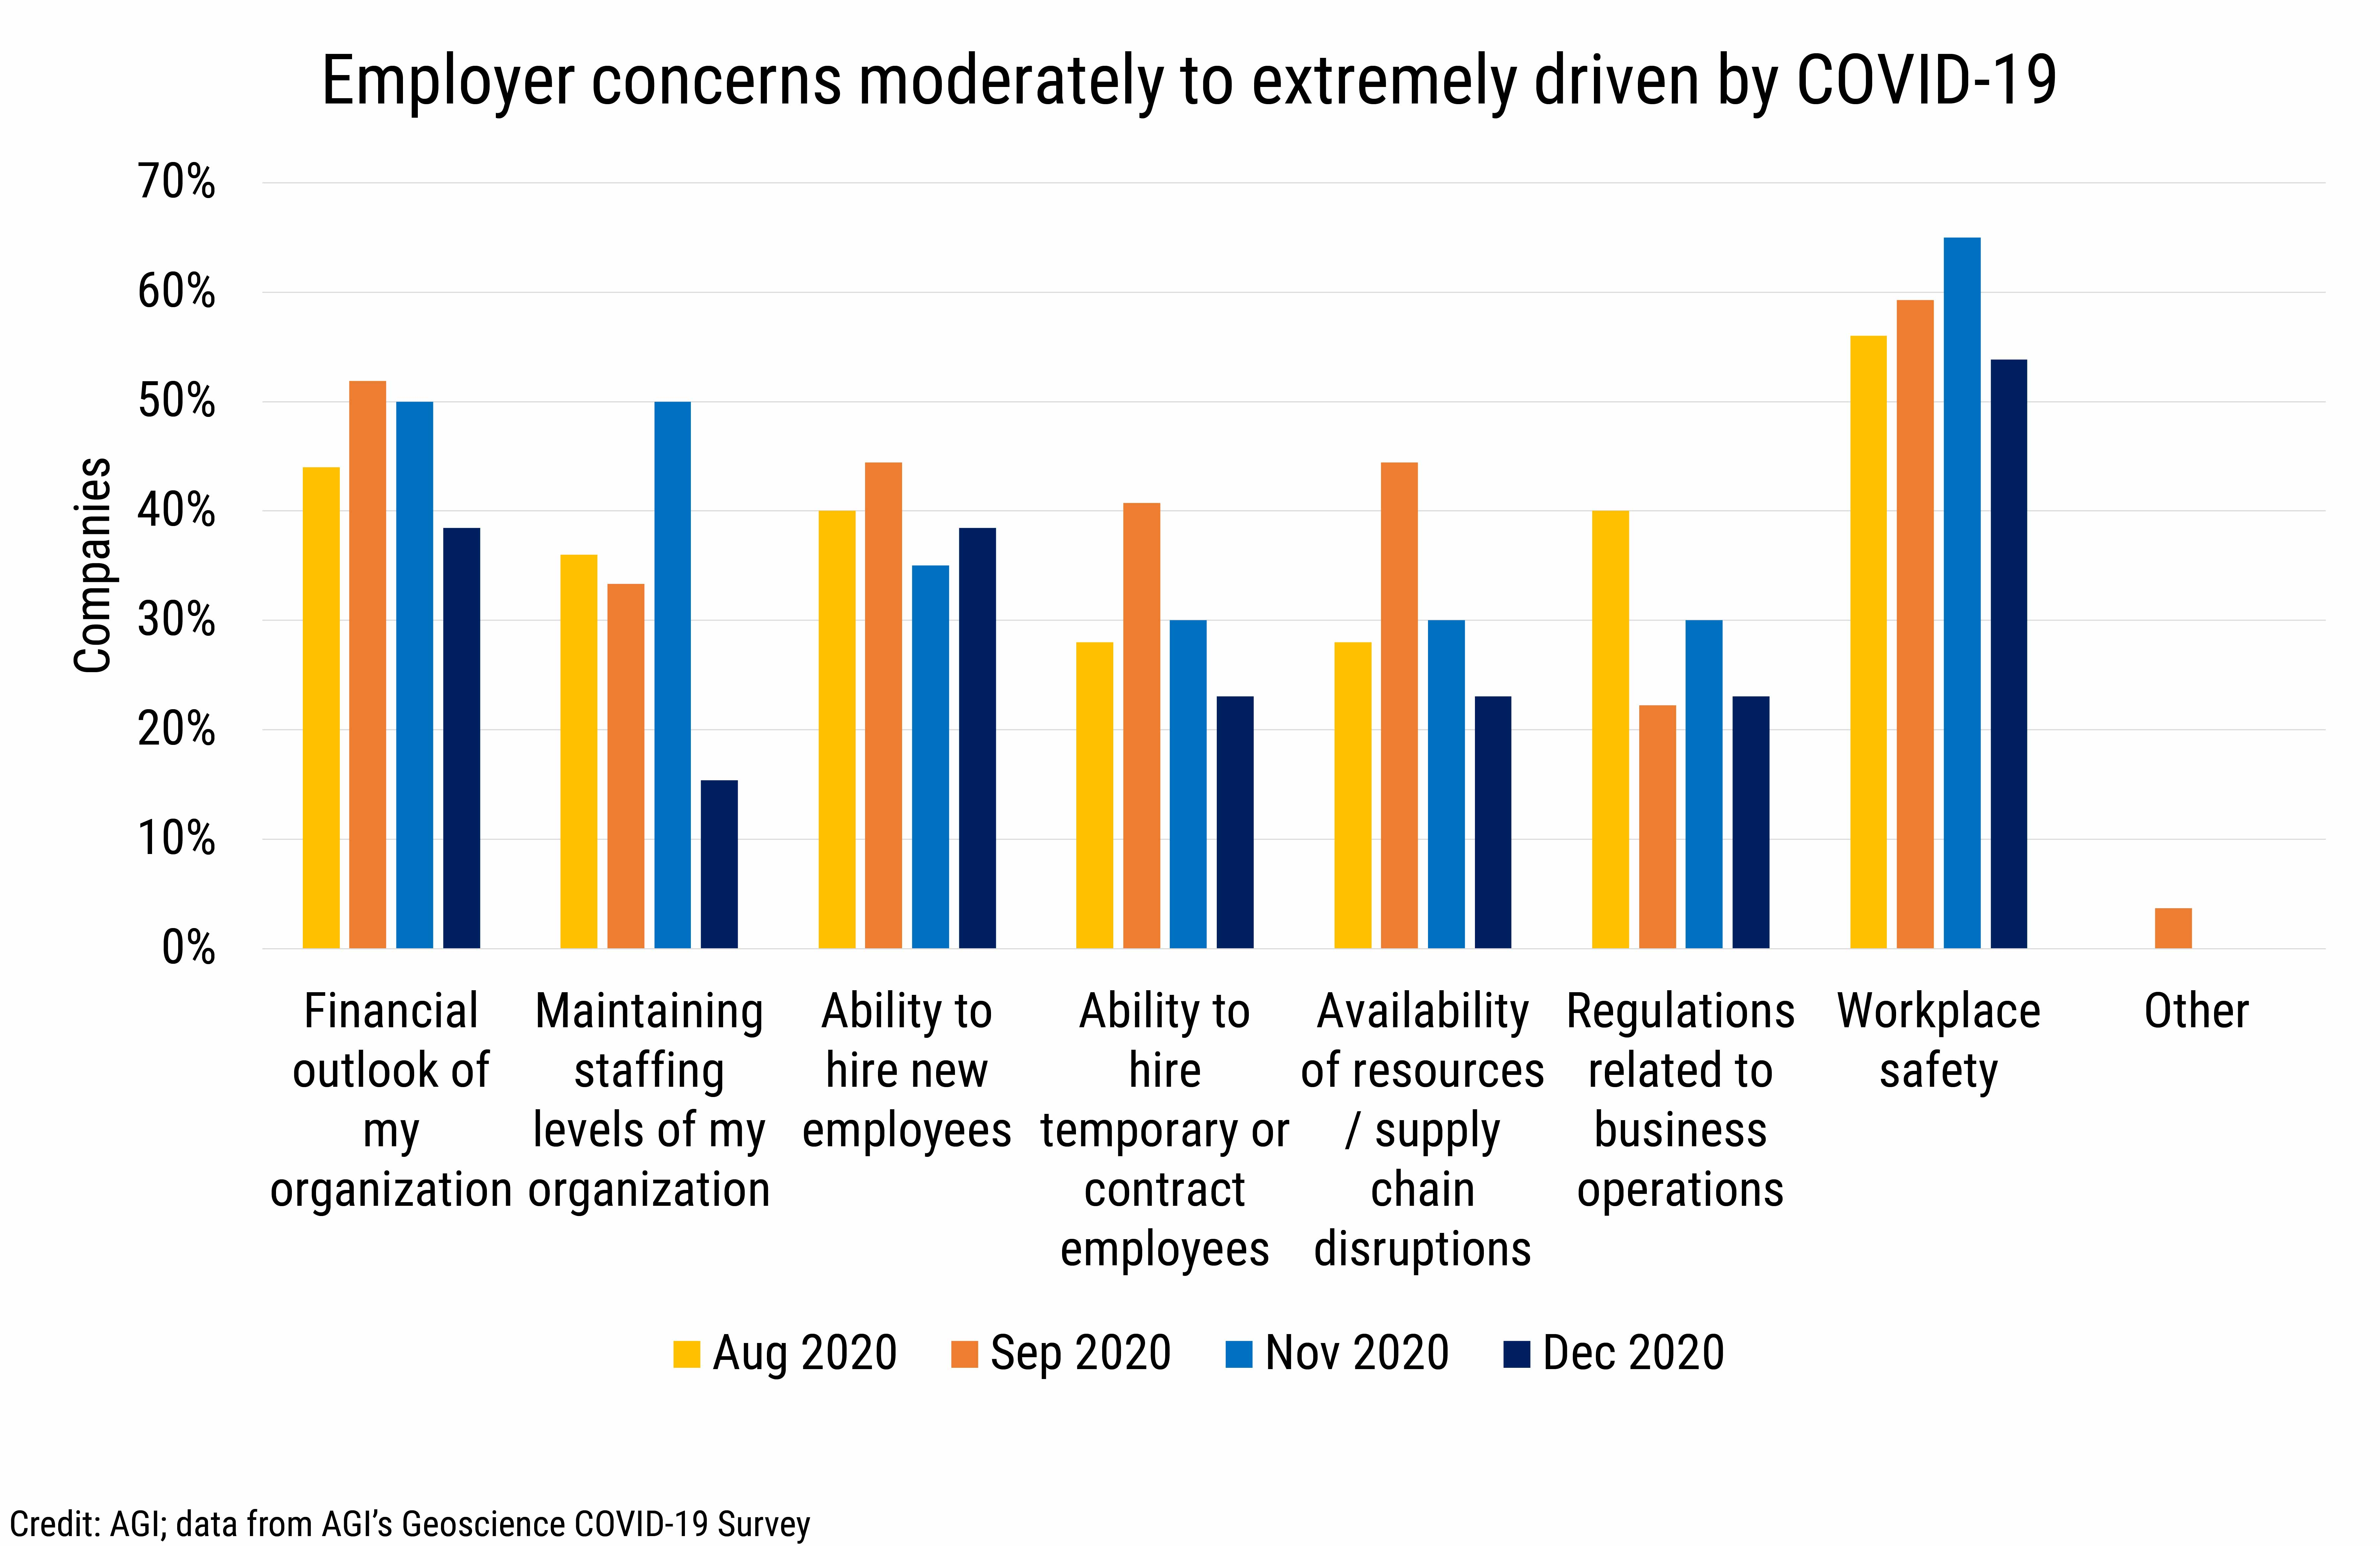 DB_2021-004_chart08: Employer concerns moderately to extremely driven by COVID-19 (Credit: AGI; data from AGI's Geoscience COVID-19 Survey)